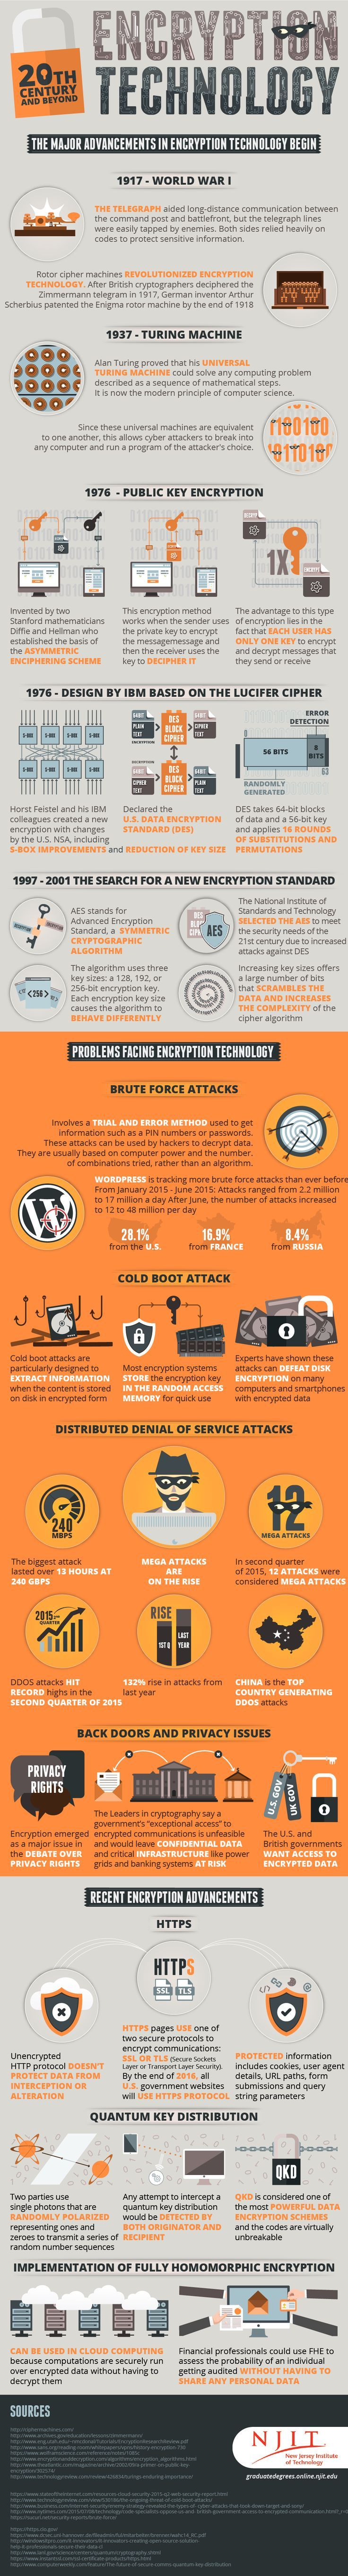 Major Advancements in Encryption Technology and Cyber Security – Imgur